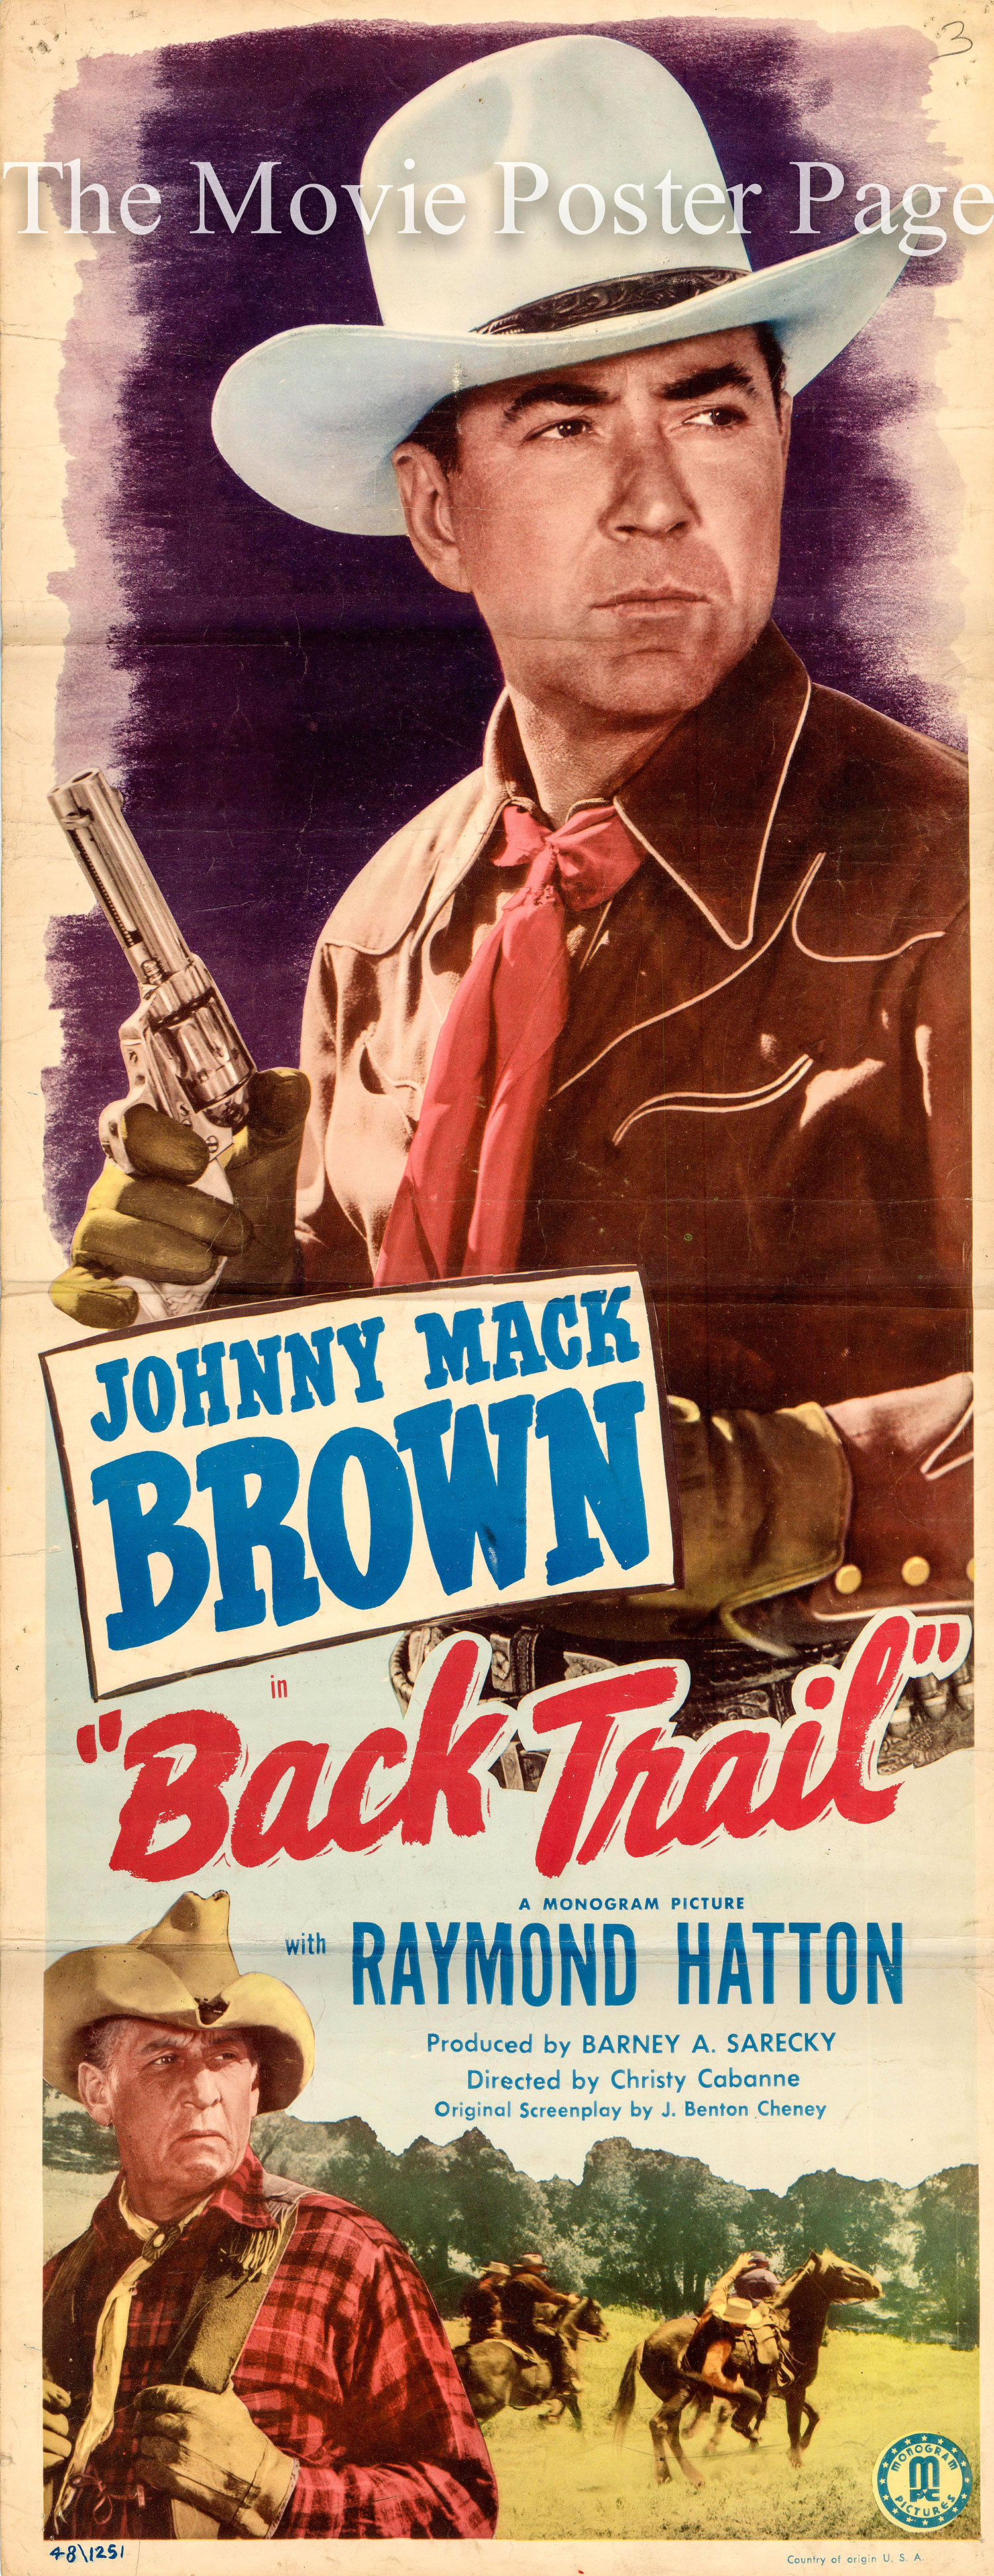 Pictured is a US insert promotional poster for the 1948 Christy Cabanne film Back Trail starring Johnny Mack Brown.